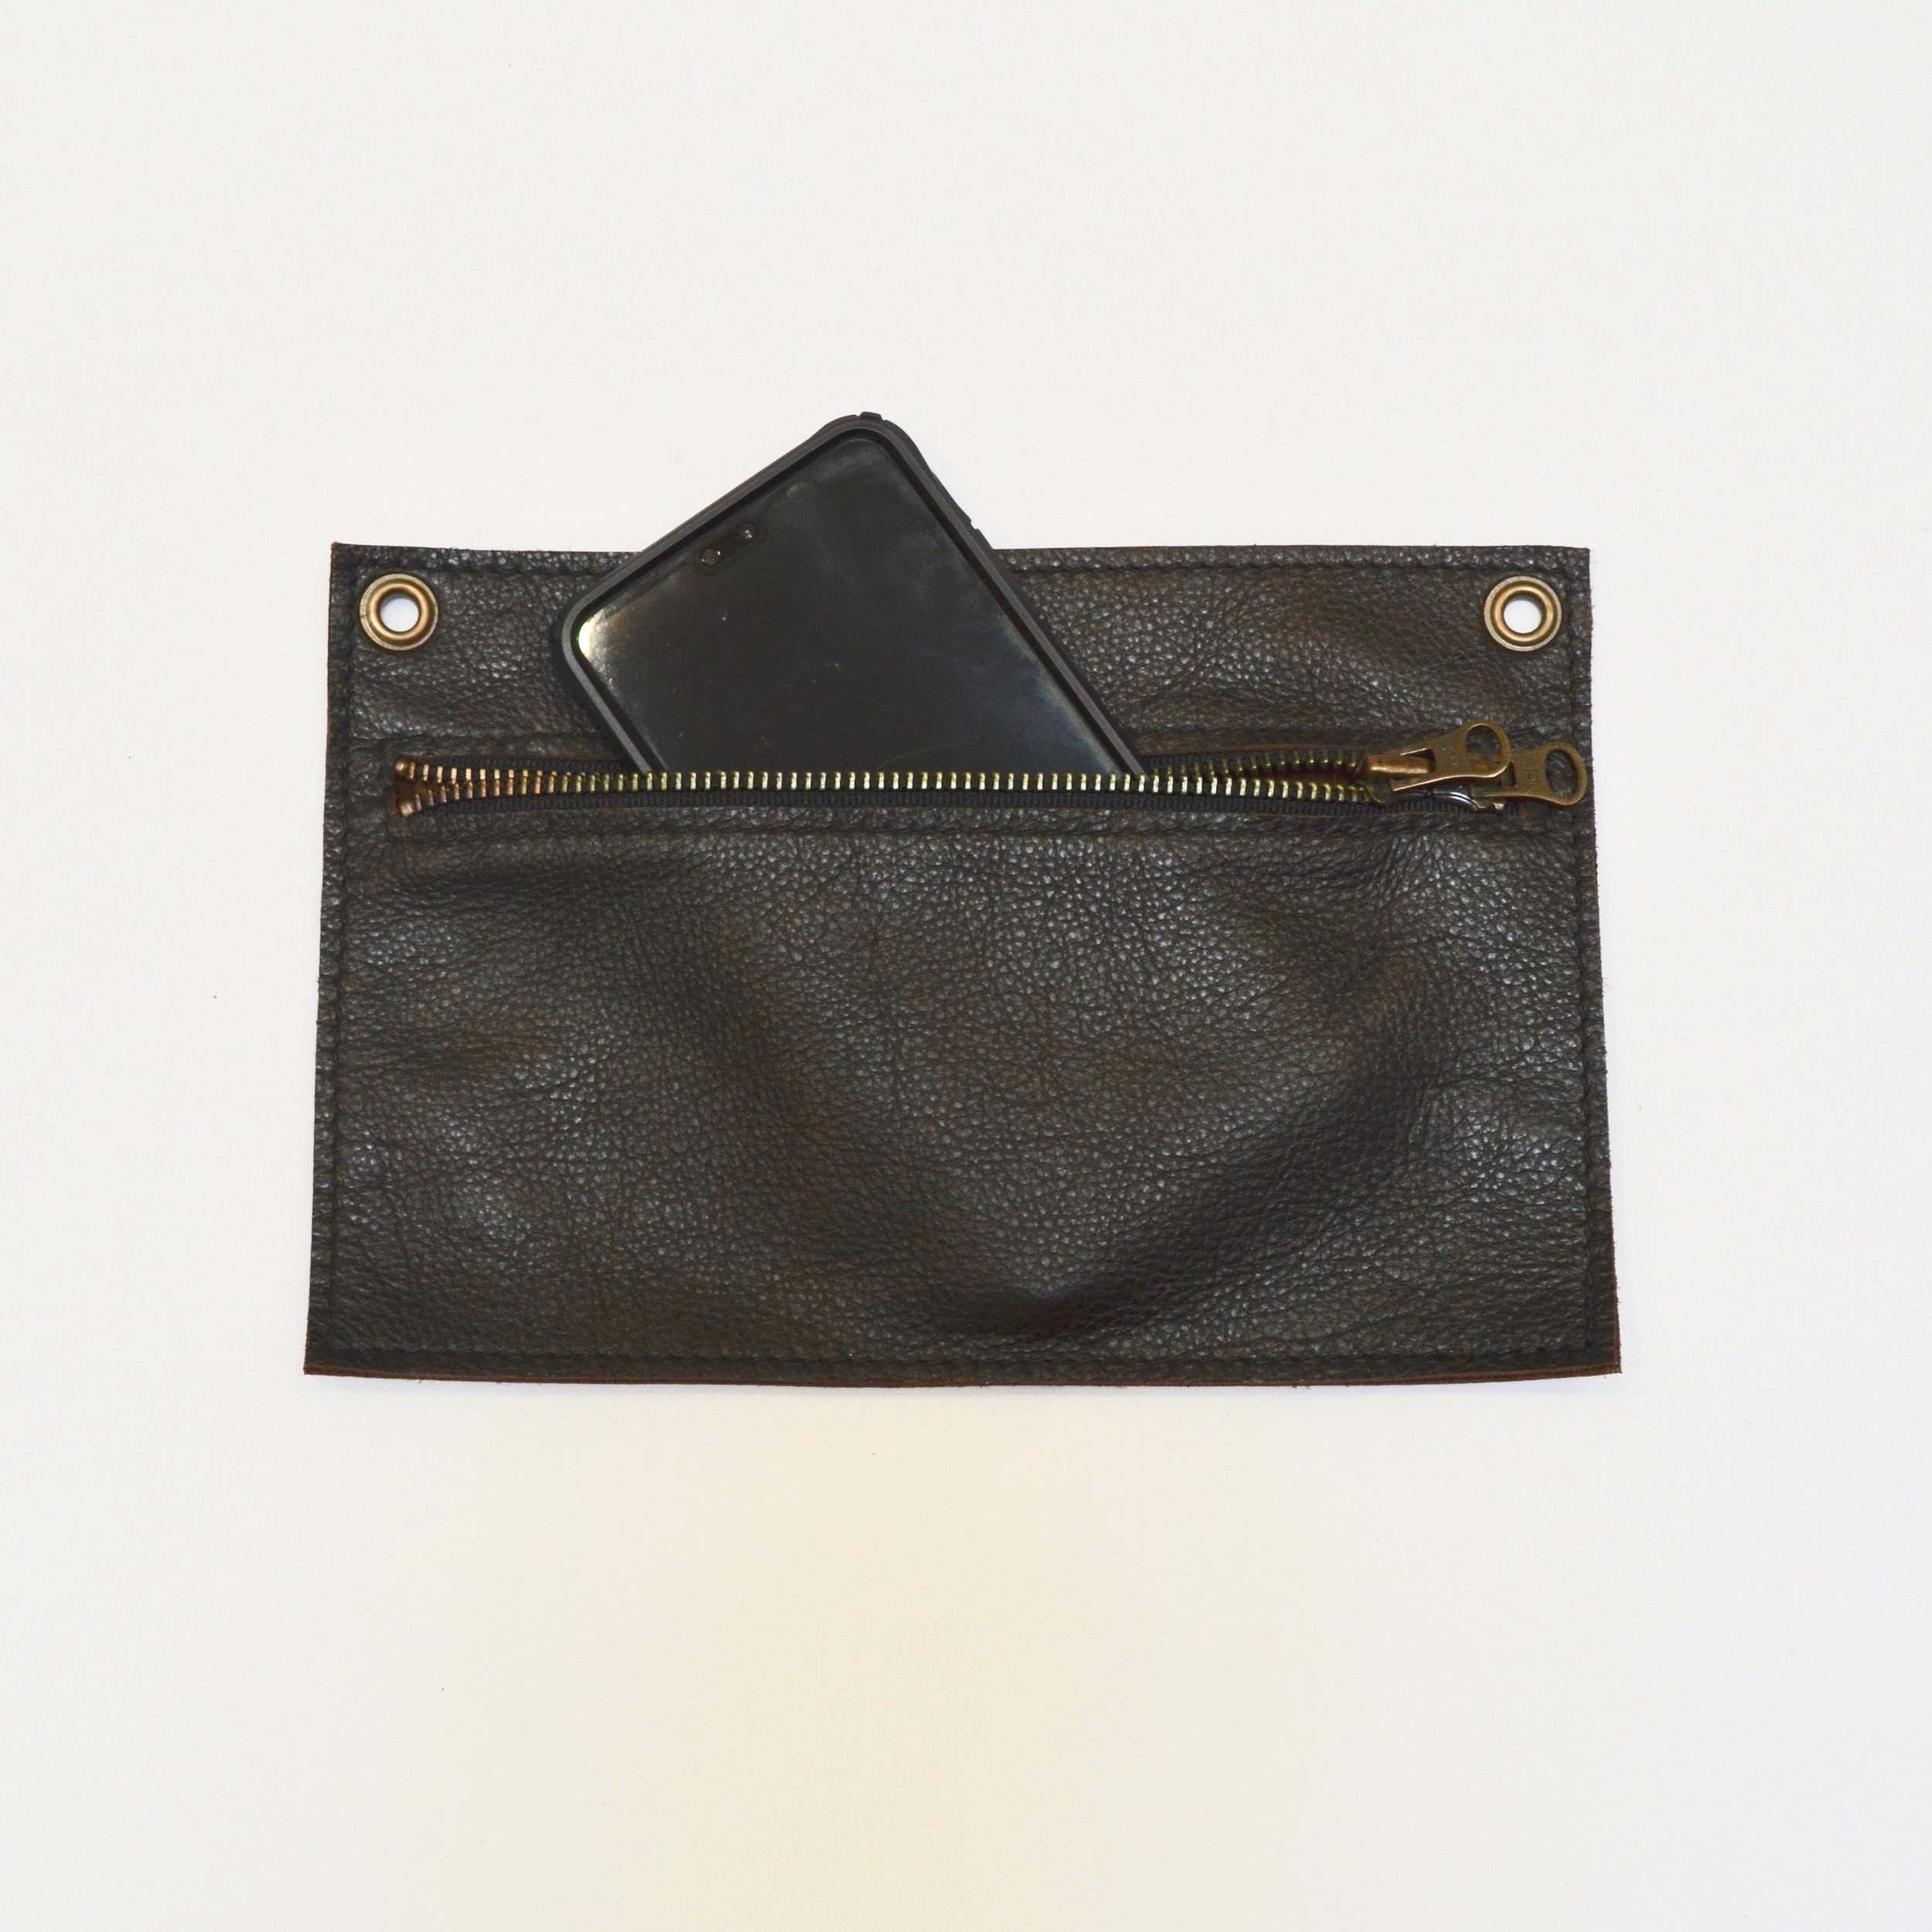 - LARGE SINGLE POCKET POUCH